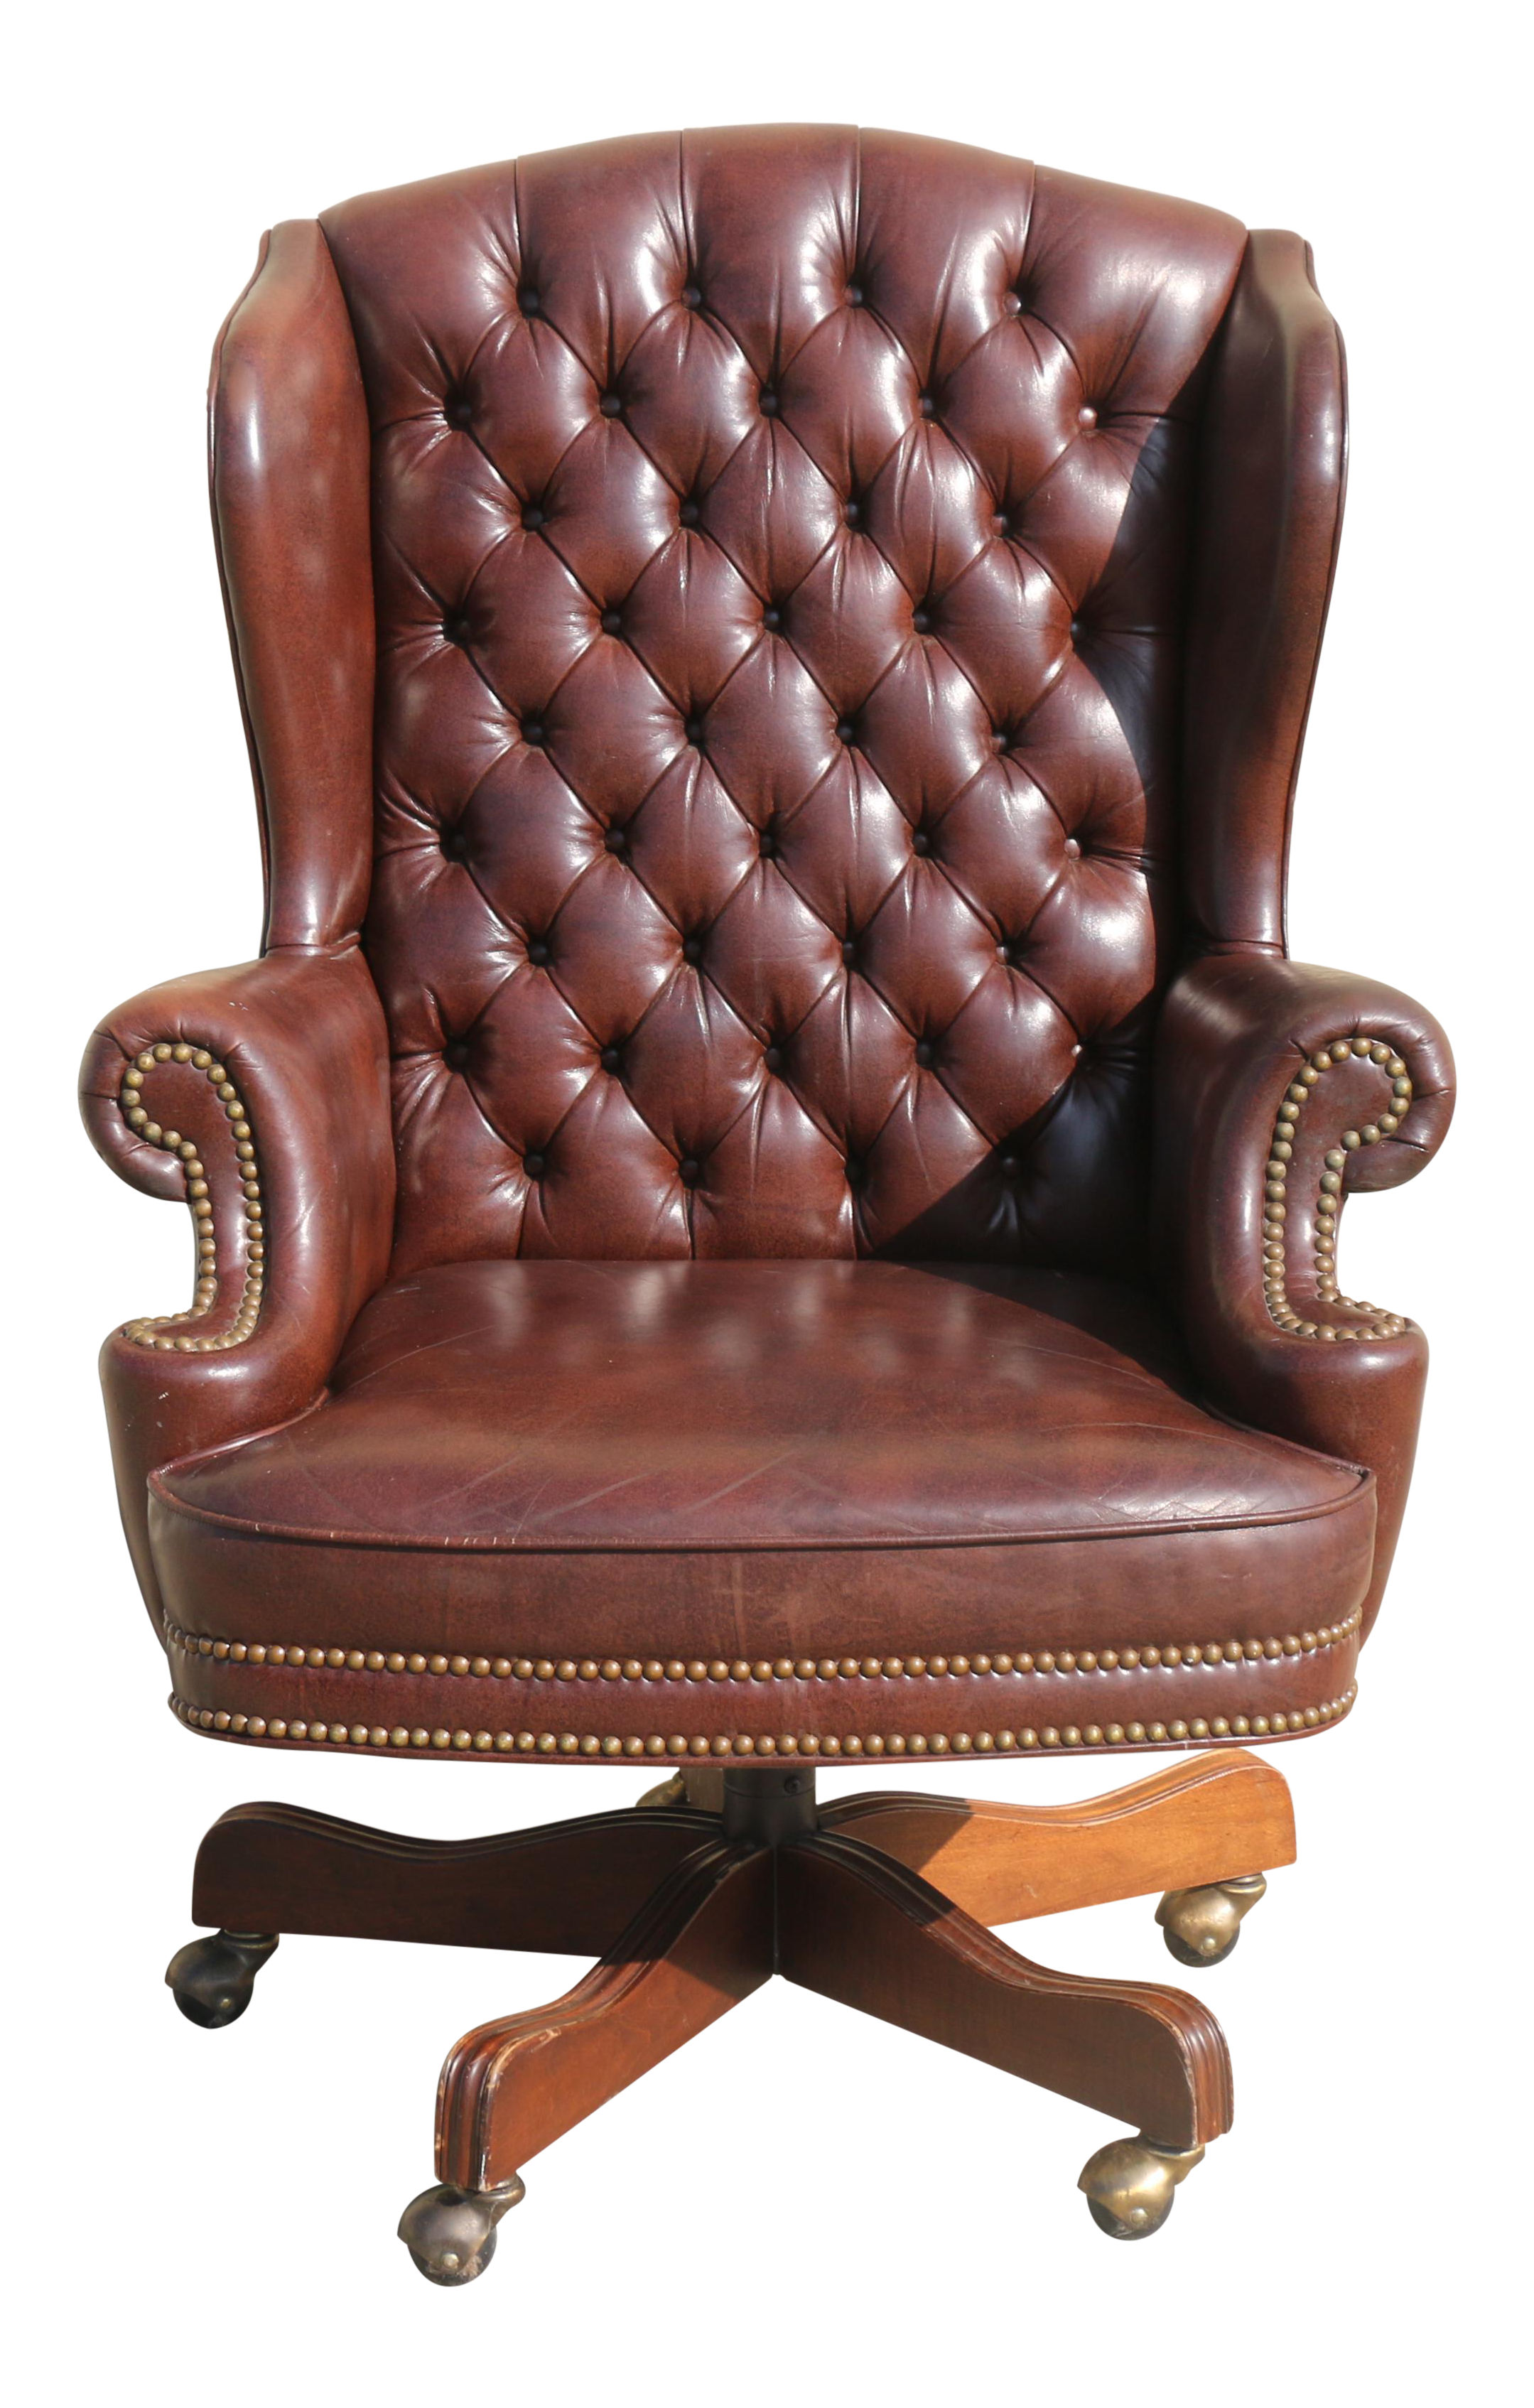 5bda29b9fb88f Vintage Office Leather Chair with wheels. Has no rips or damages. Rolls  perfectly and very comfortable.